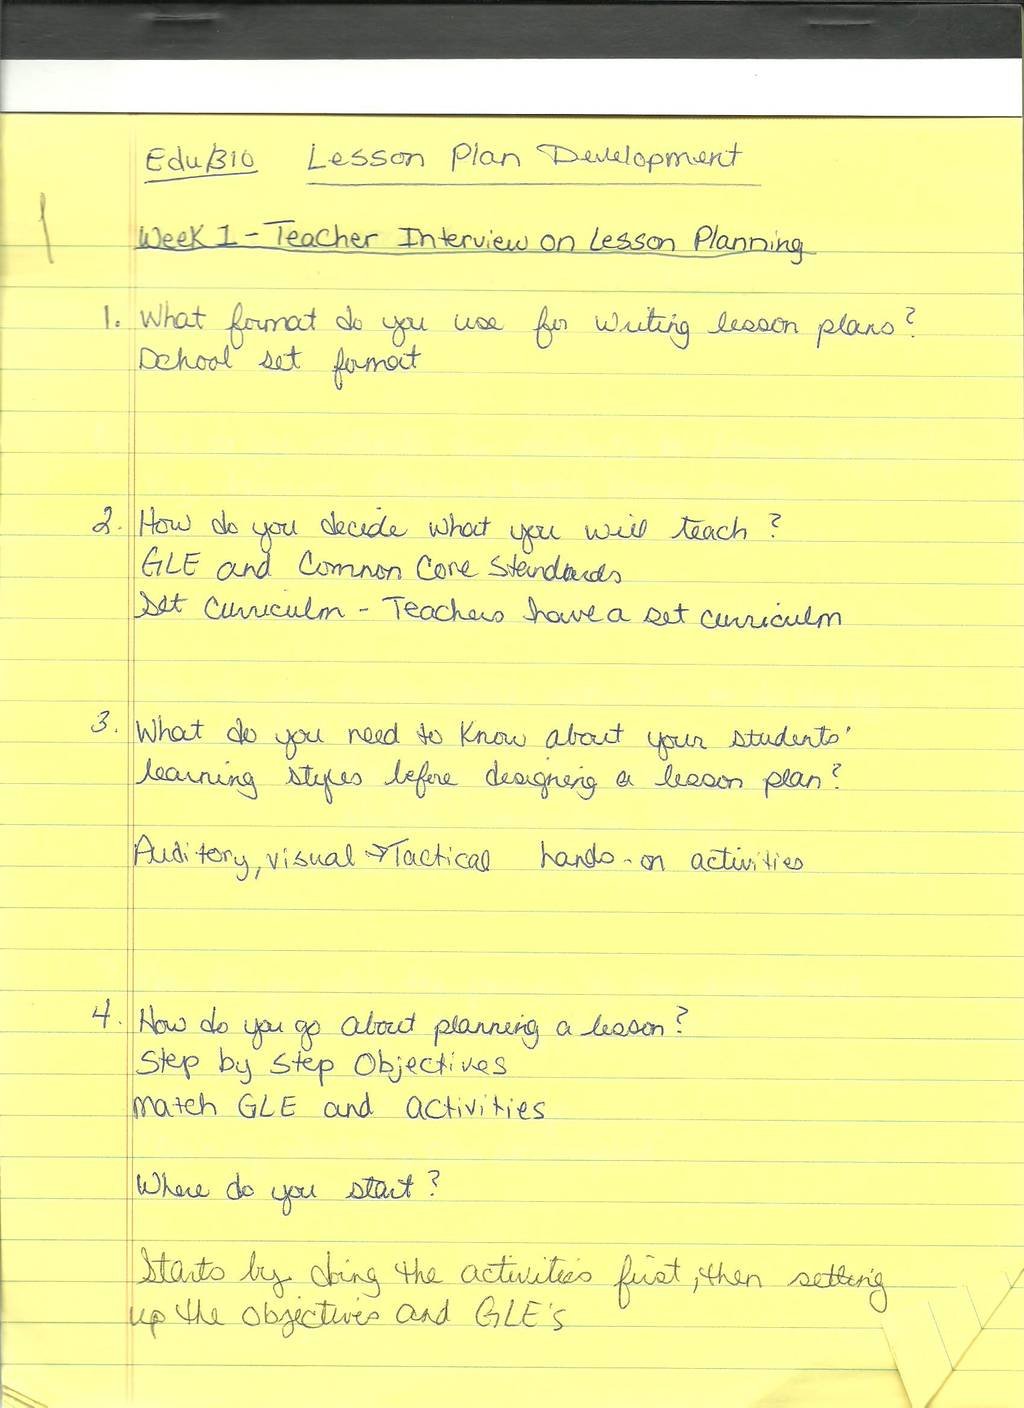 teacher interview and observation on lesson plan